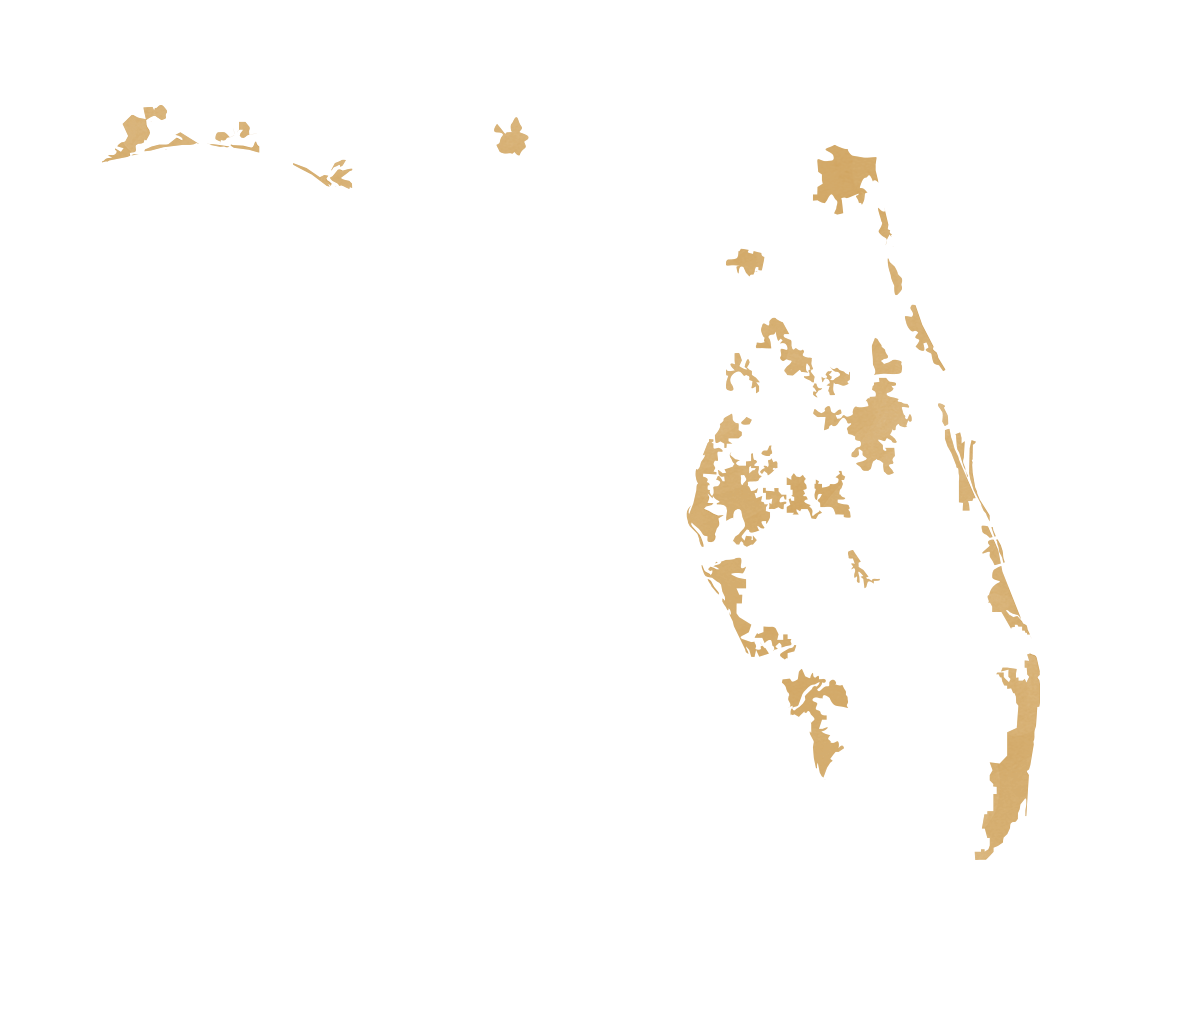 Florida map displaying urban areas